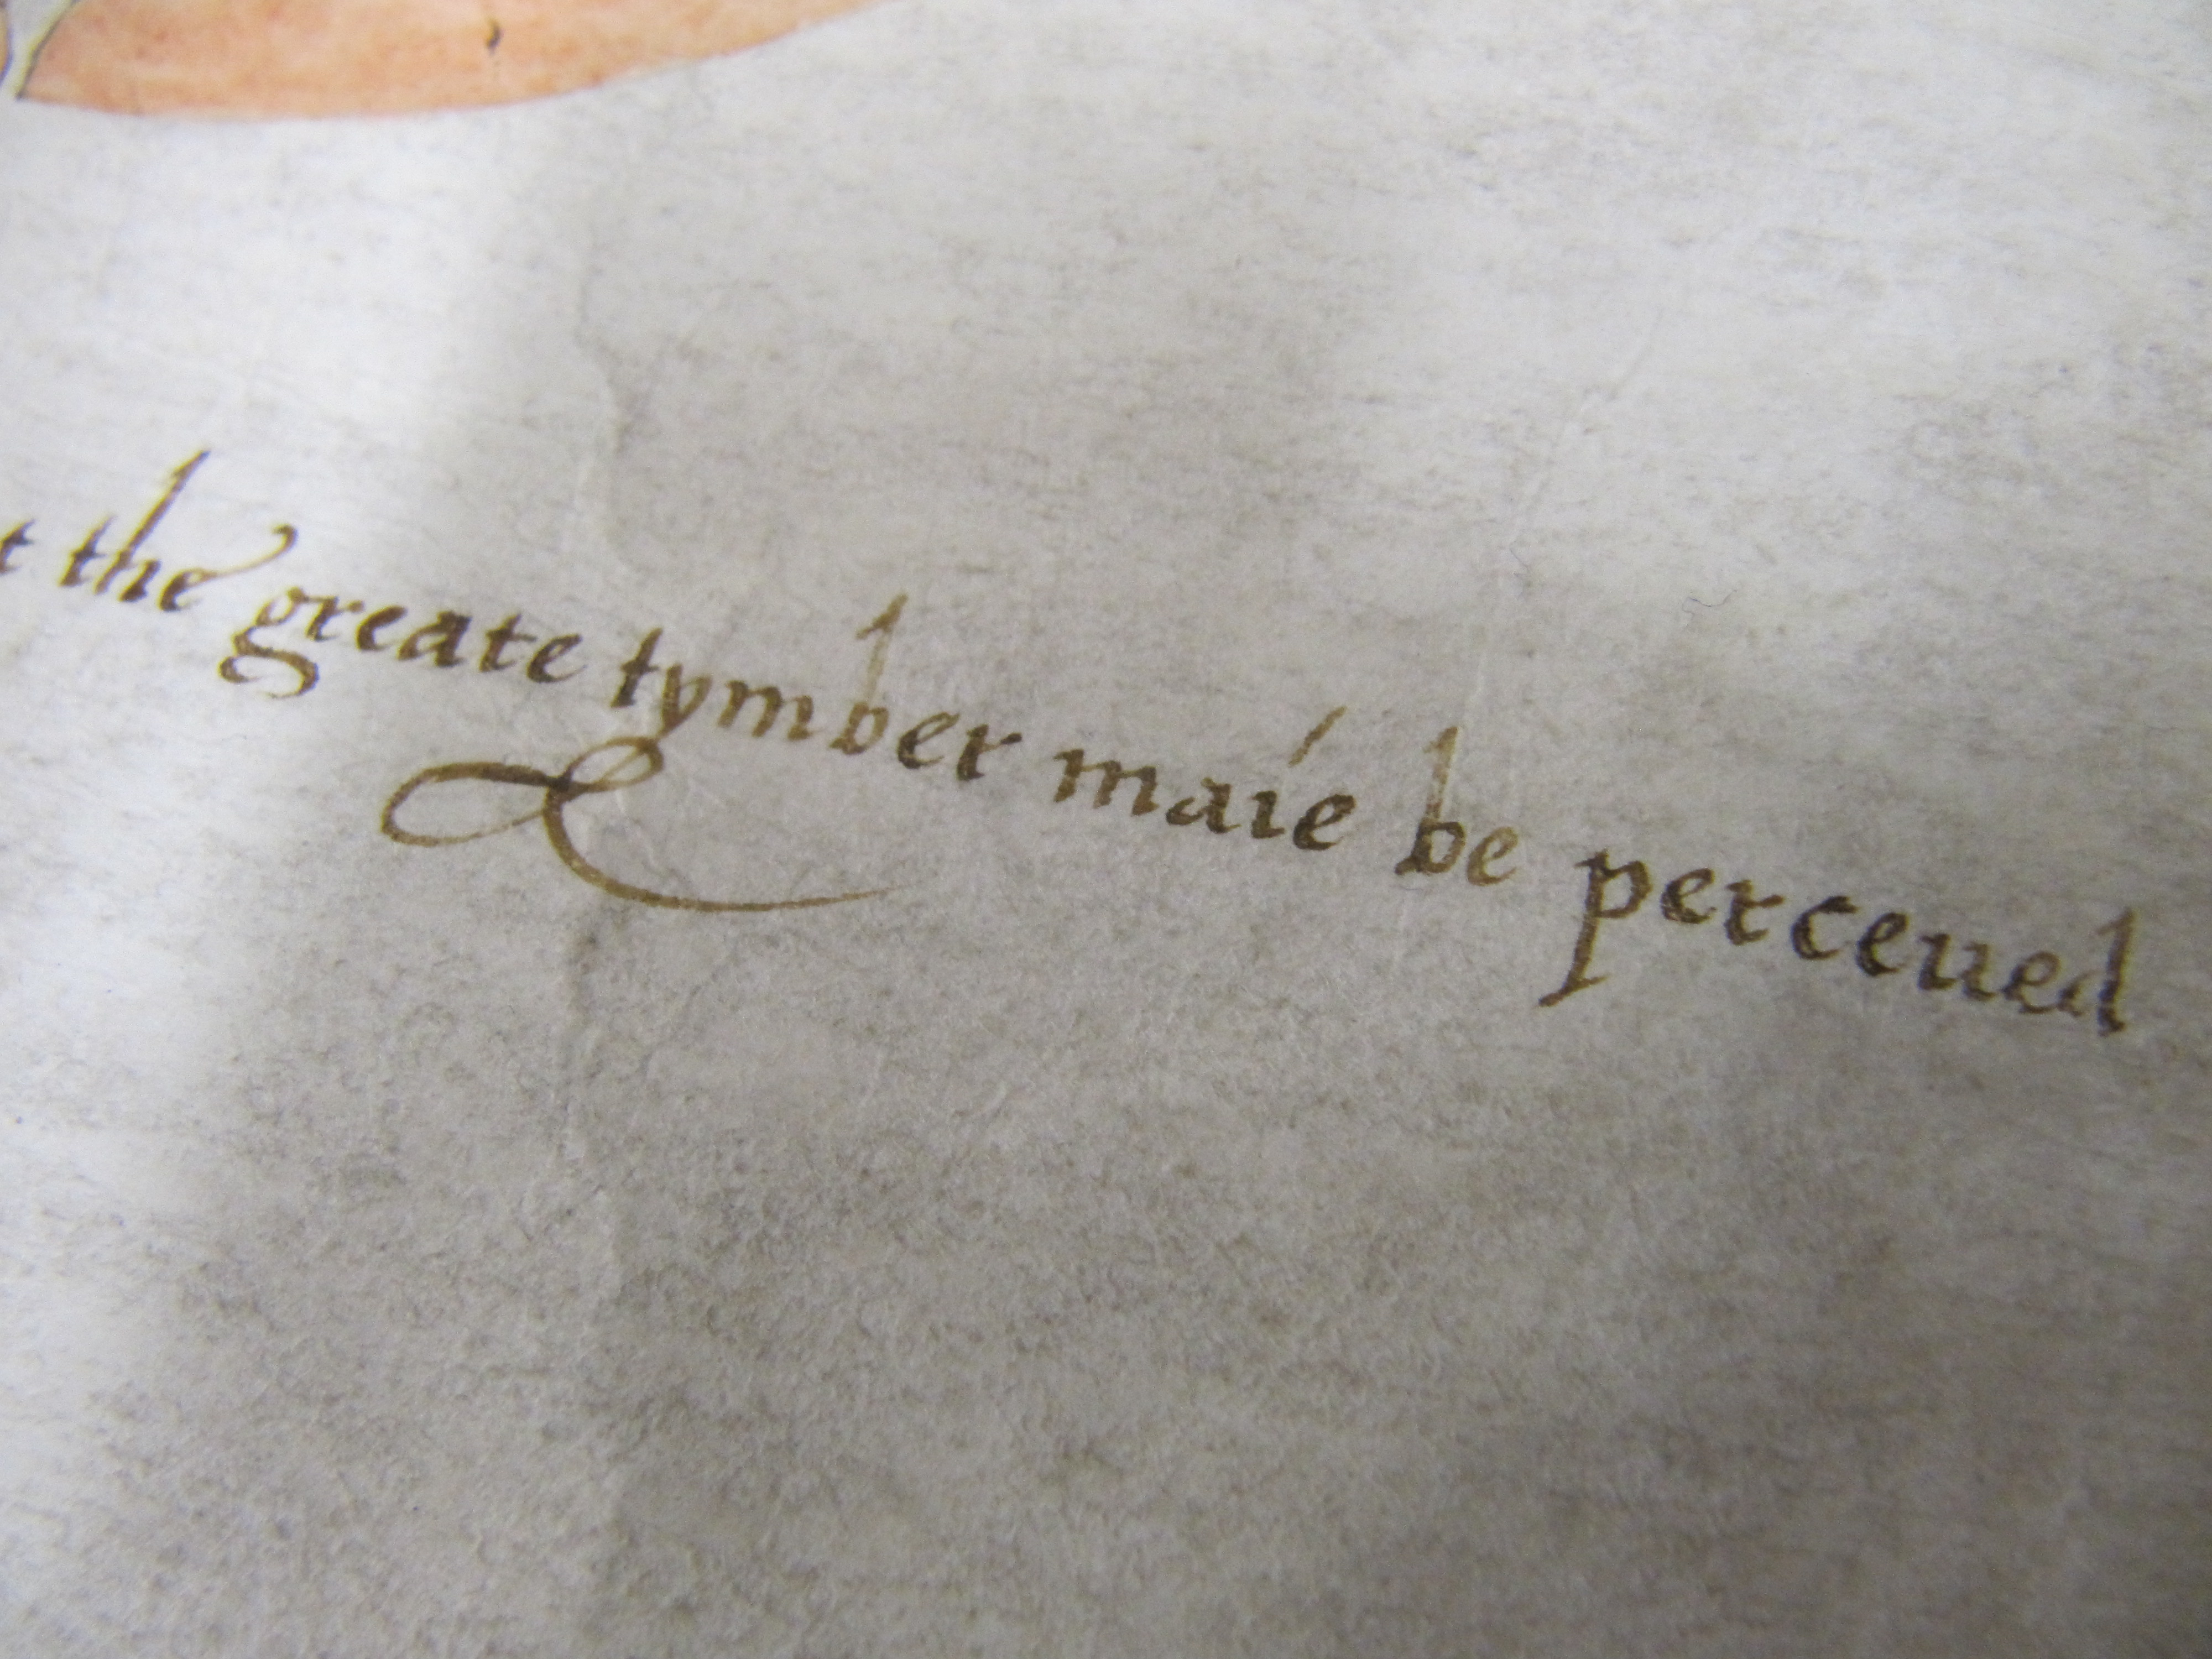 An example of 17th century spelling 'a great timber may be perceived'